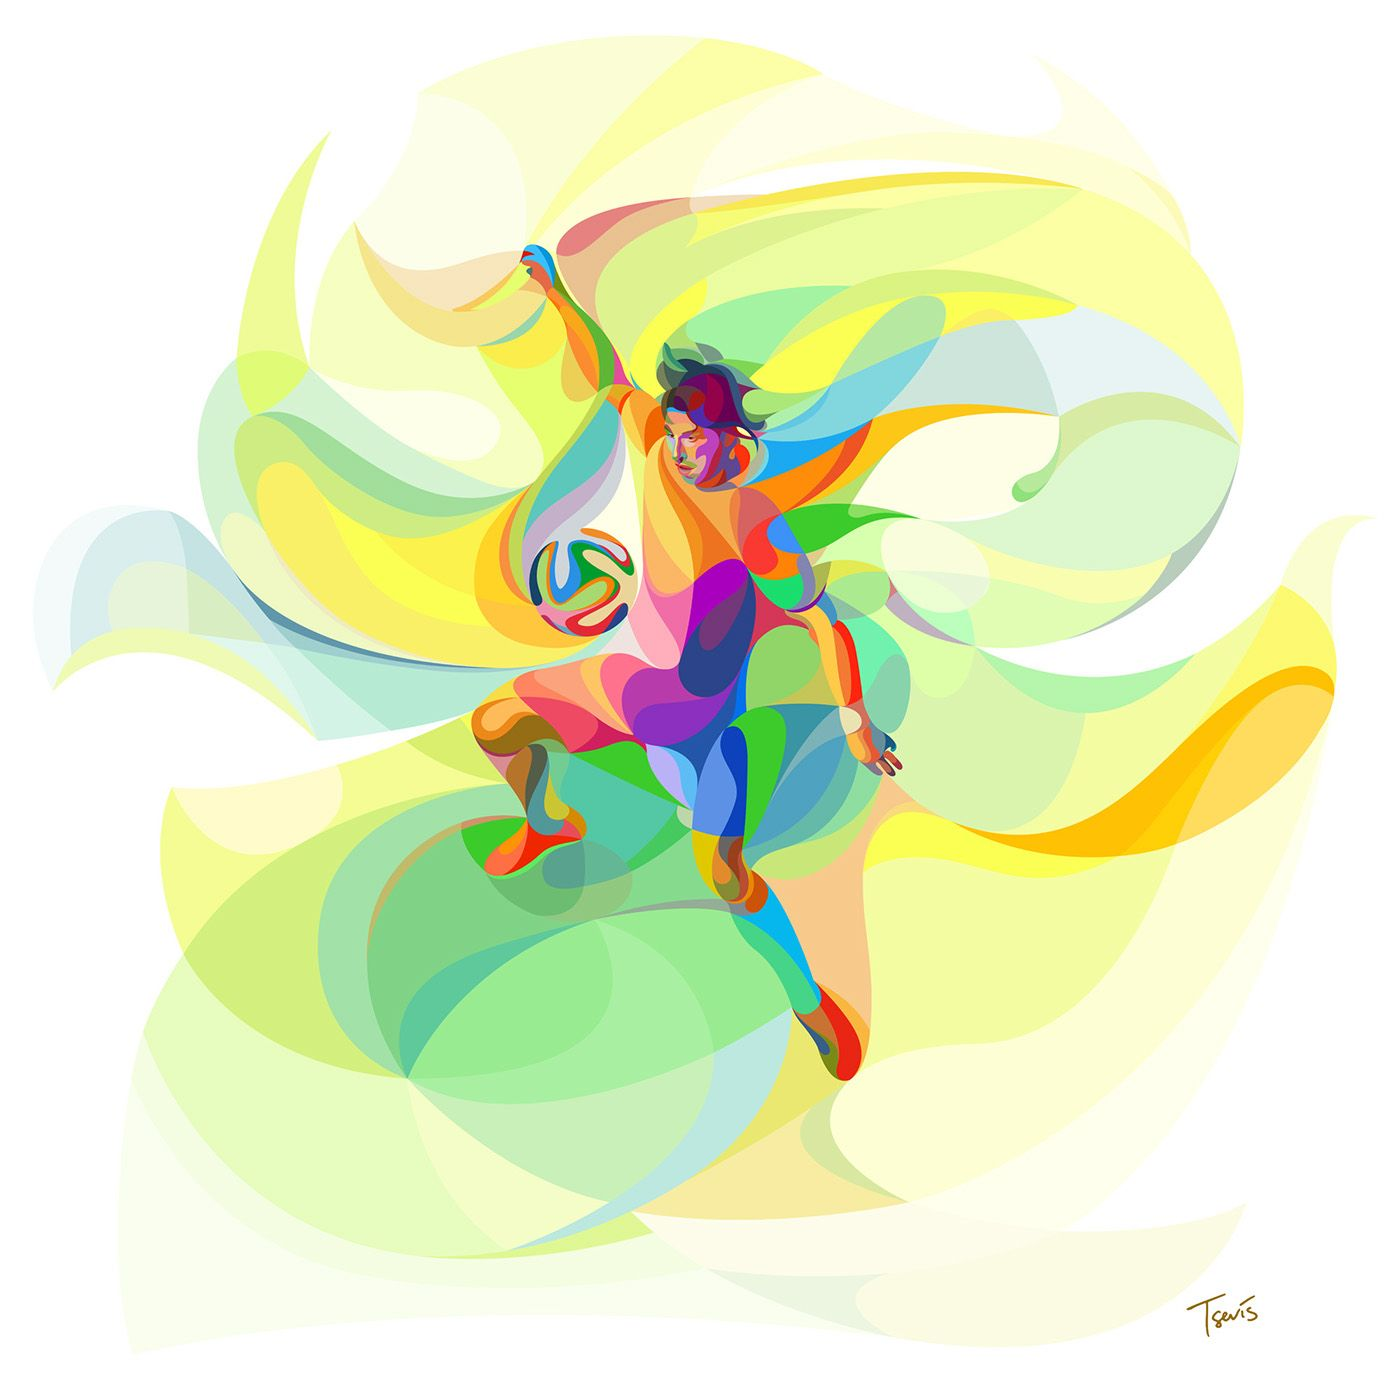 Futuristic And Colorful Digital Art Works By Charis Tsevis Sport